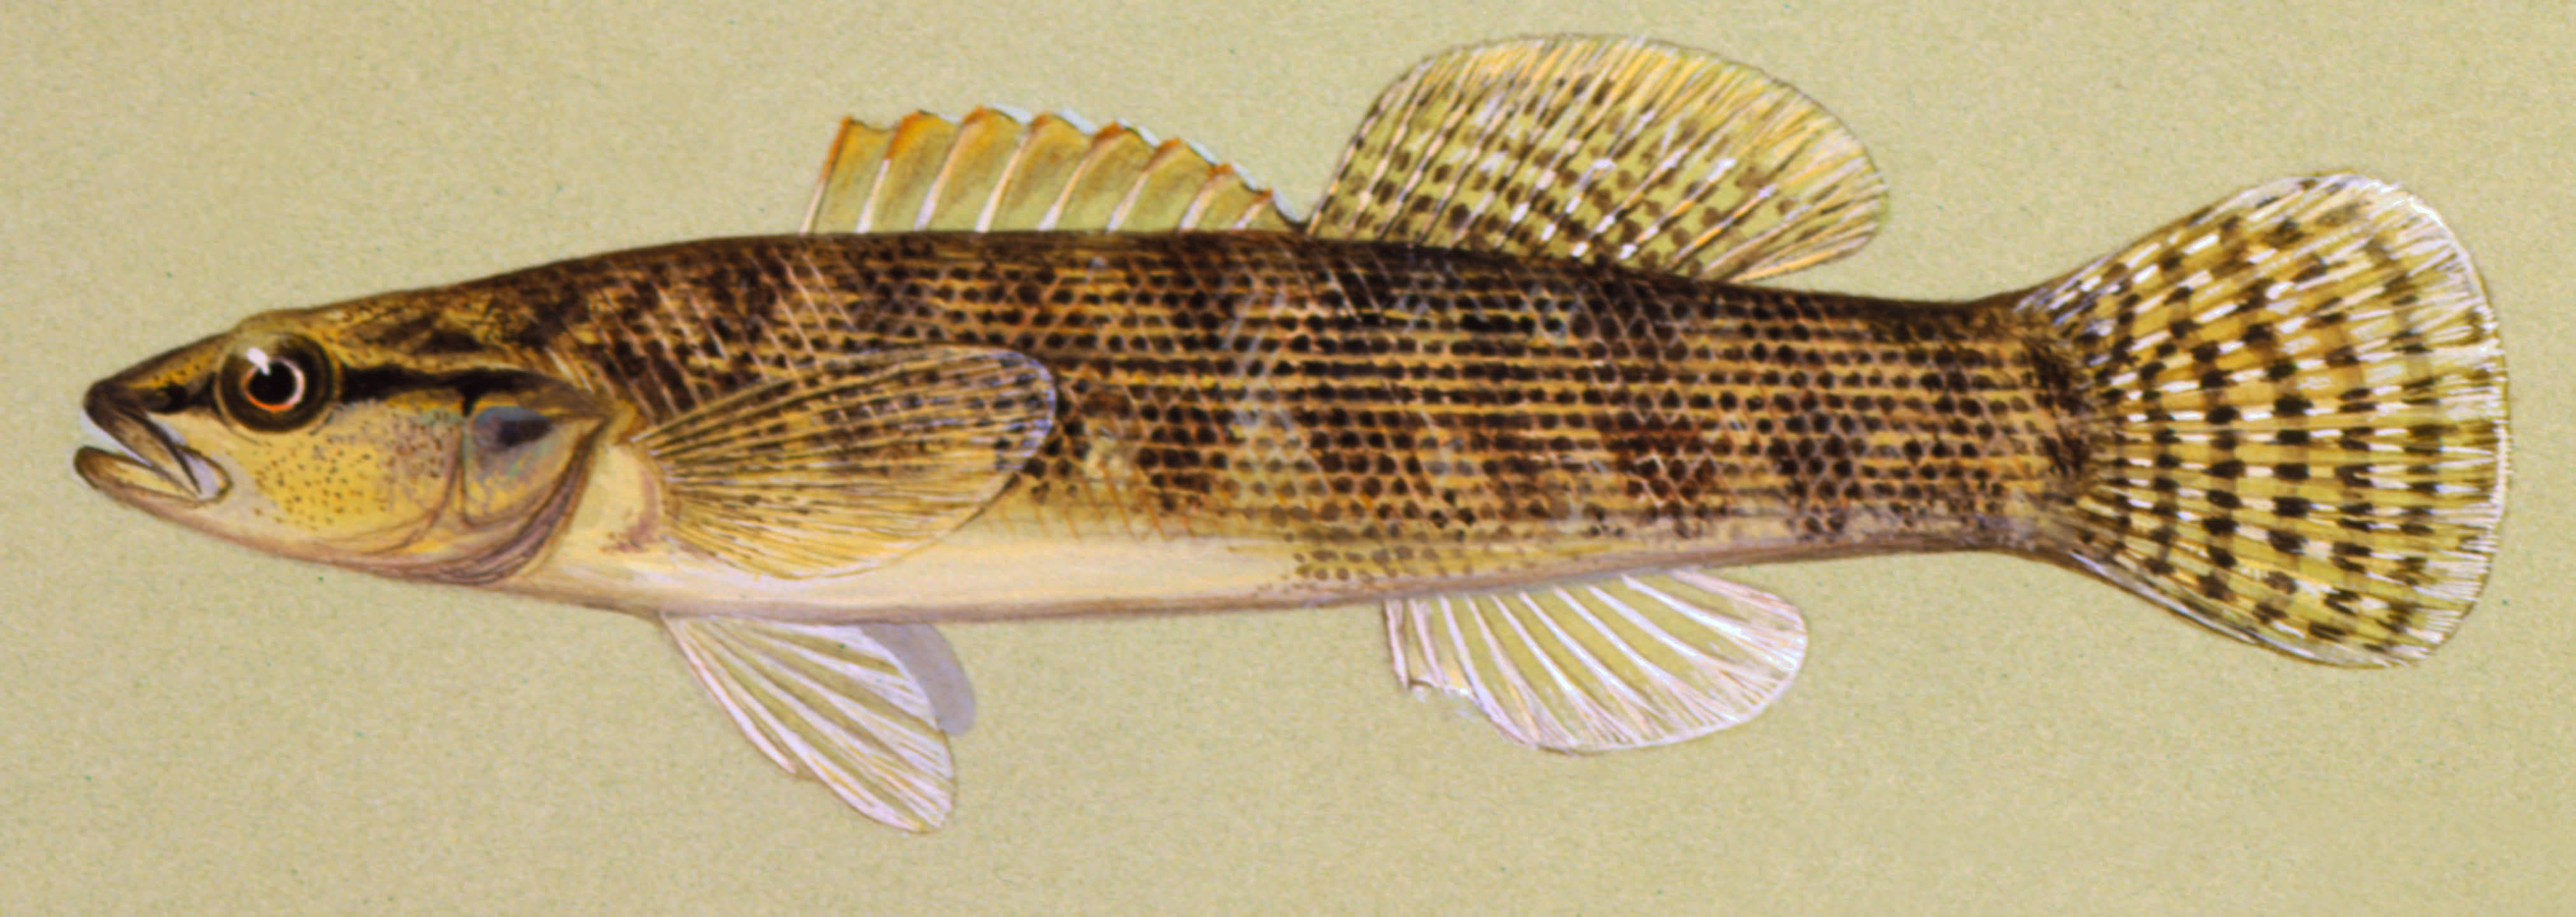 Fantail Darter, illustration by Maynard Reece, from Iowa Fish and Fishing.